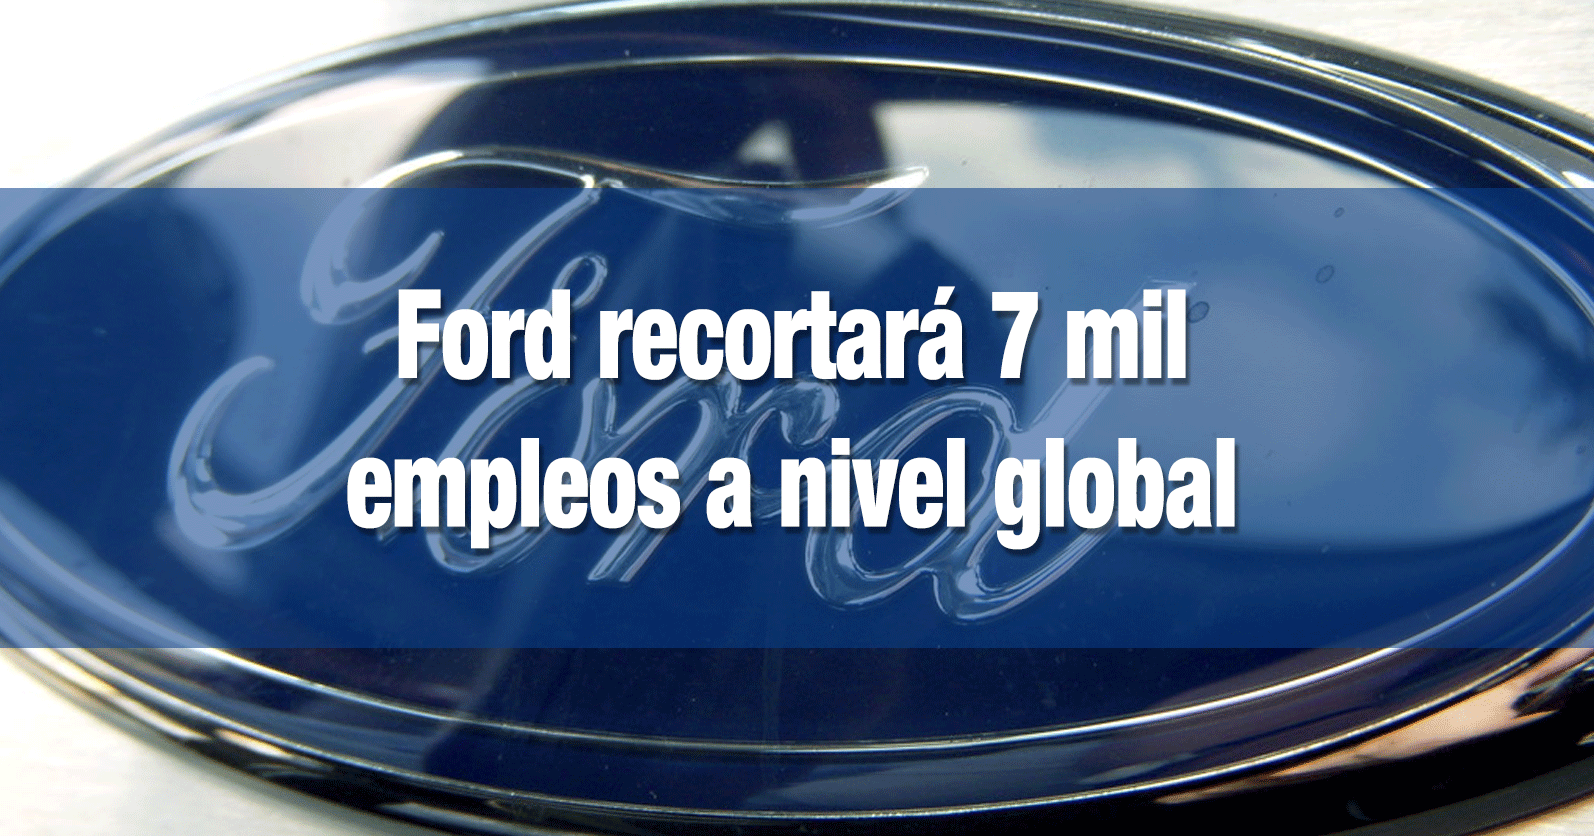 Ford recortará 7 mil empleos a nivel global